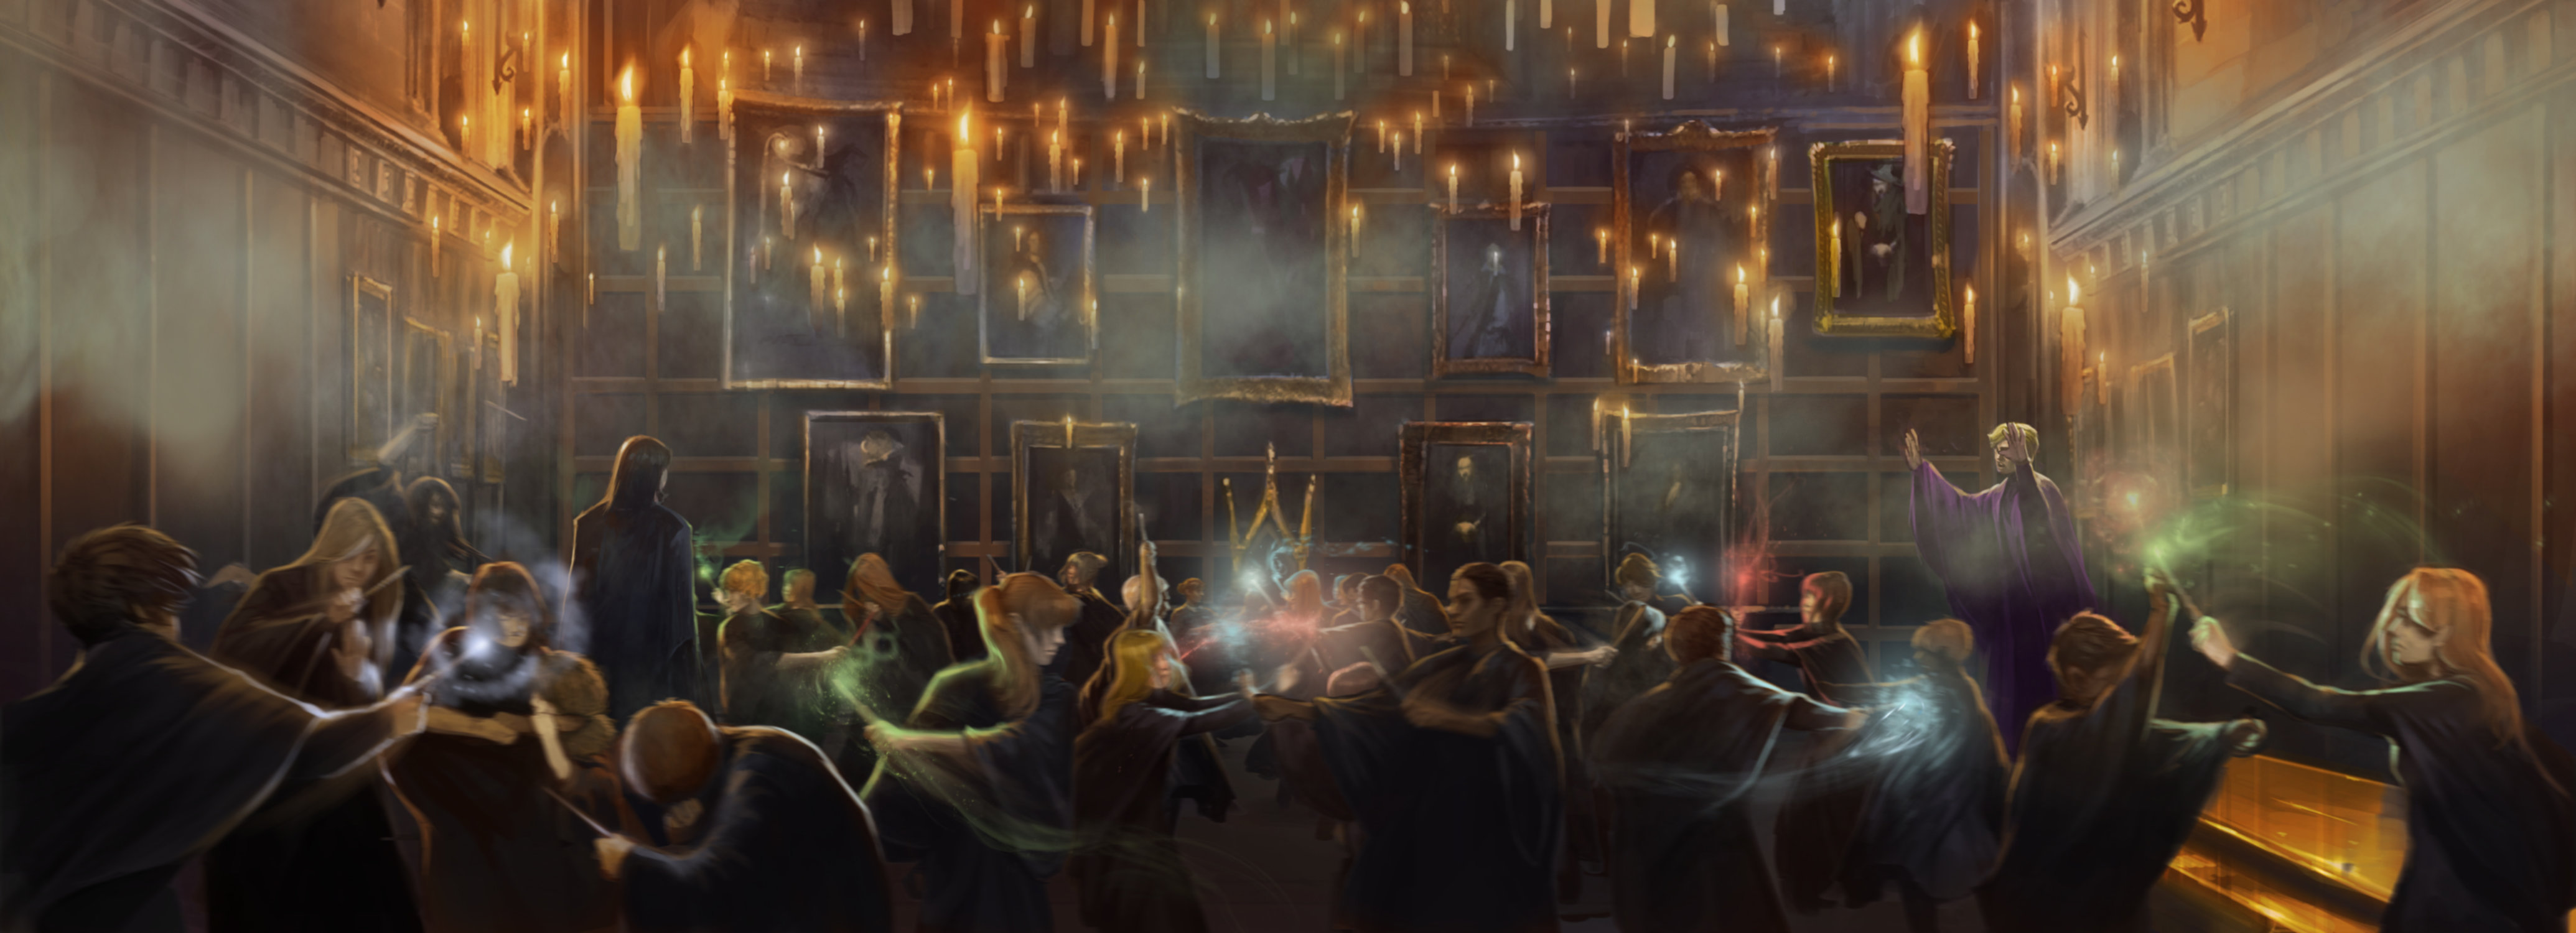 Expelliarmus: exploring Harry Potter's signature spell - Pottermore